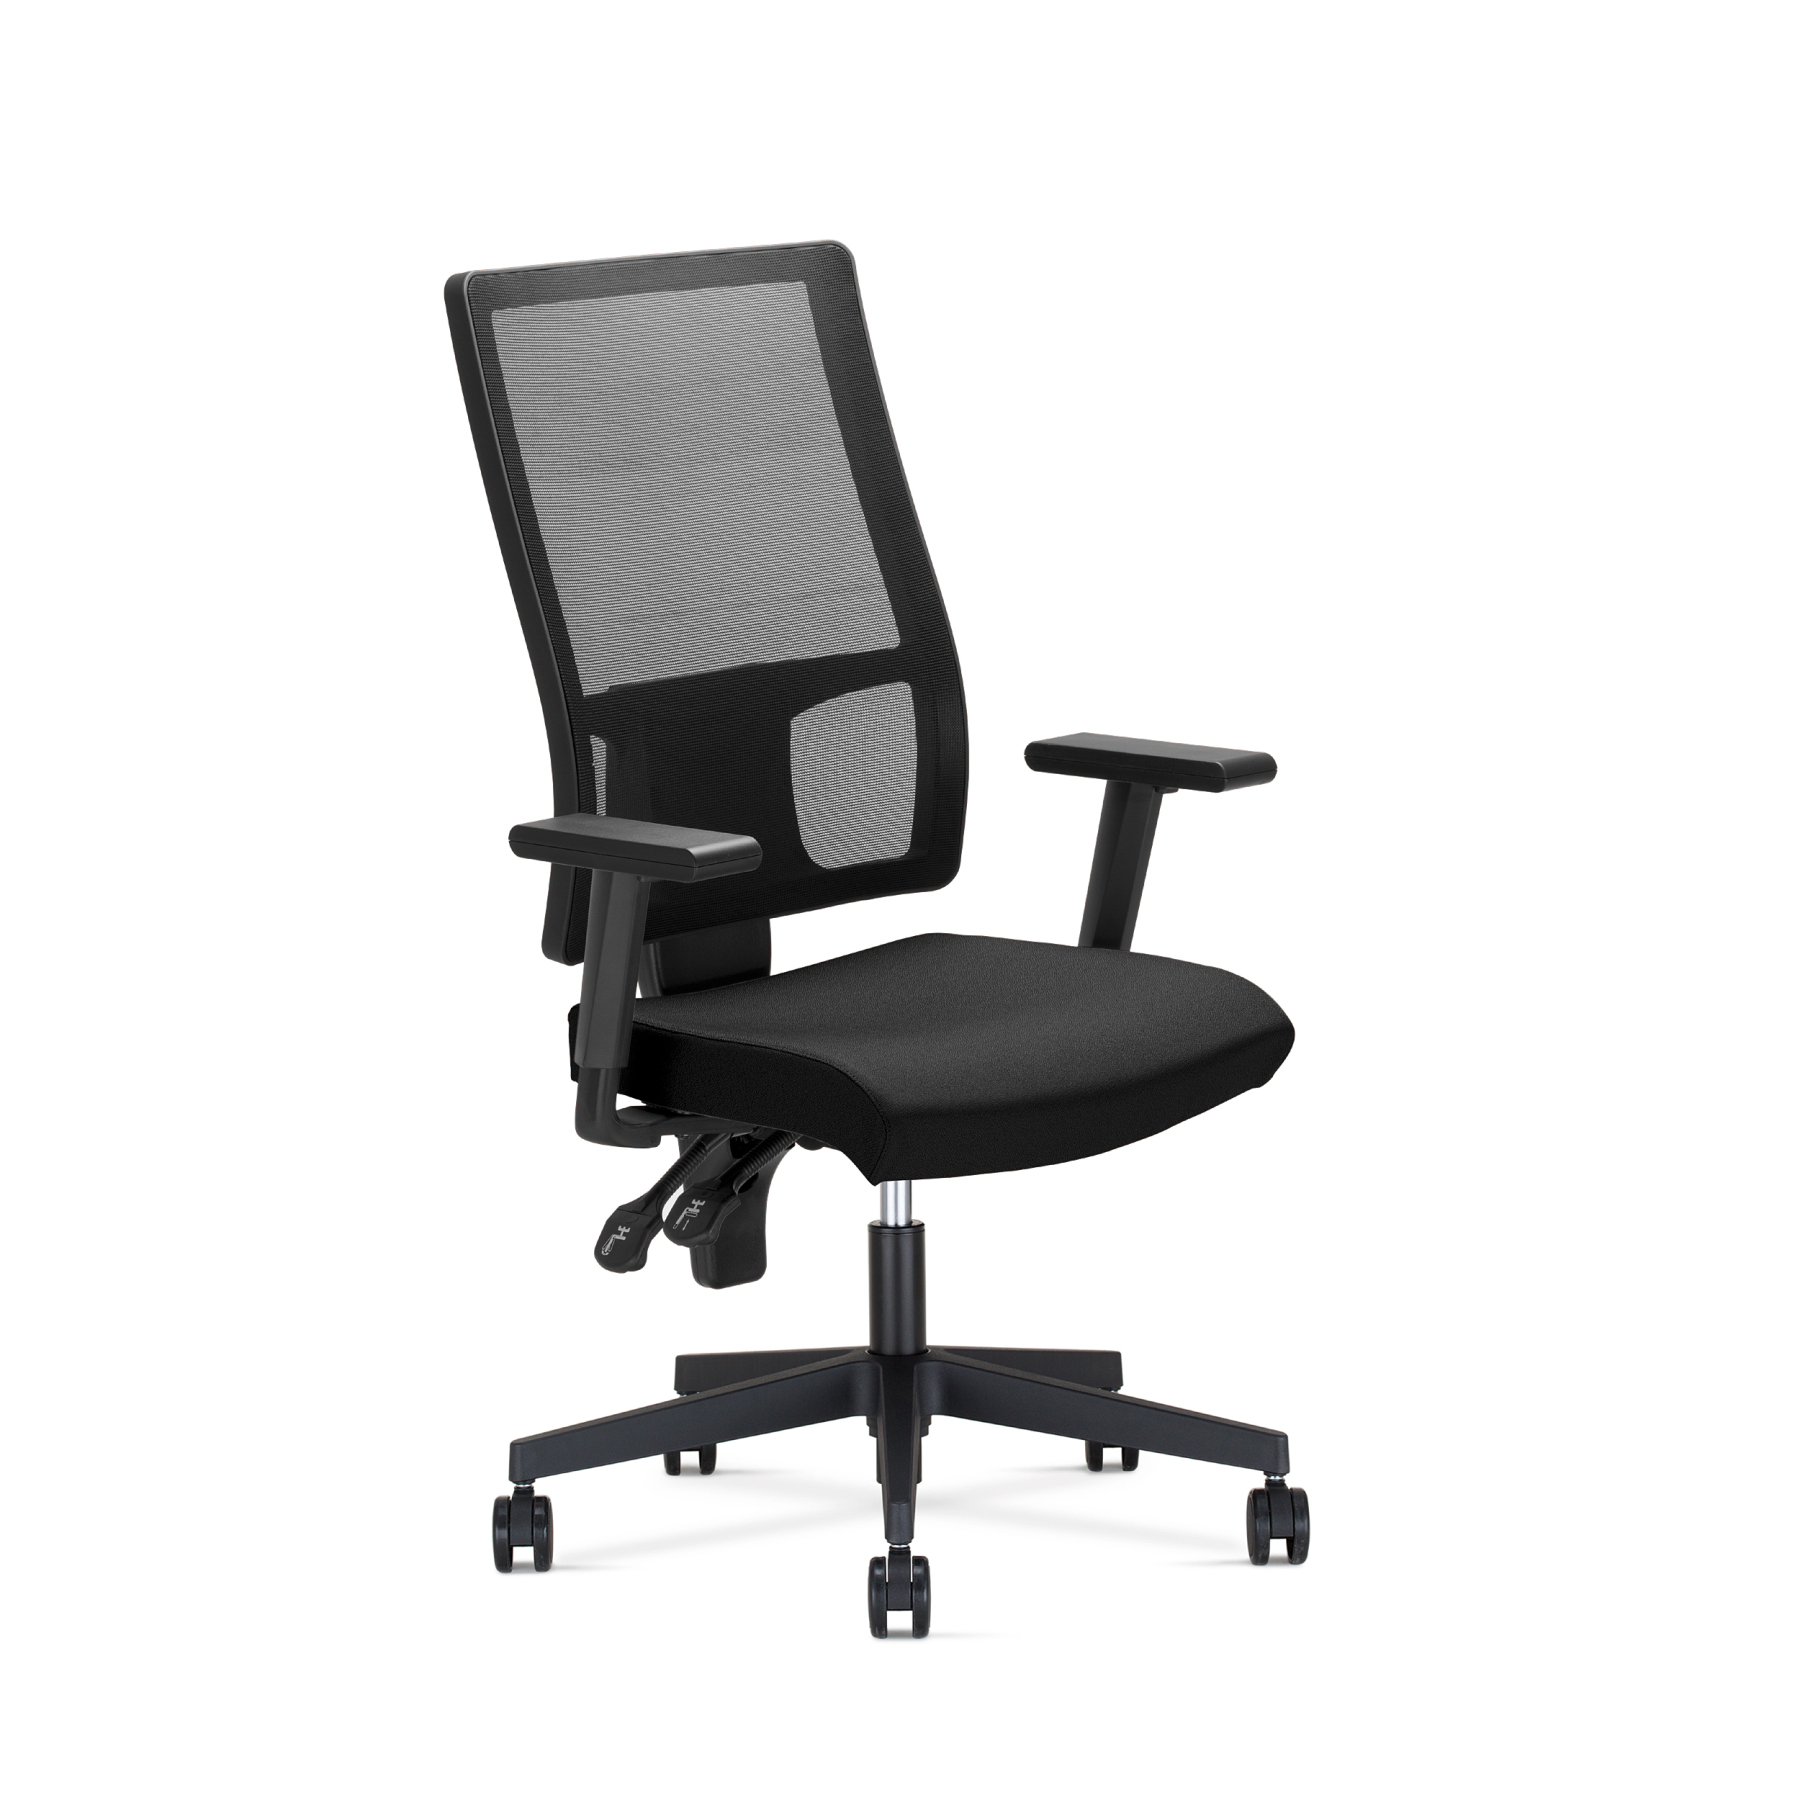 Ergonomic Office Chair With Mechanism Permanent Contact, Arms Dimmable And Lumbar Reinforcement-Backing Mesh